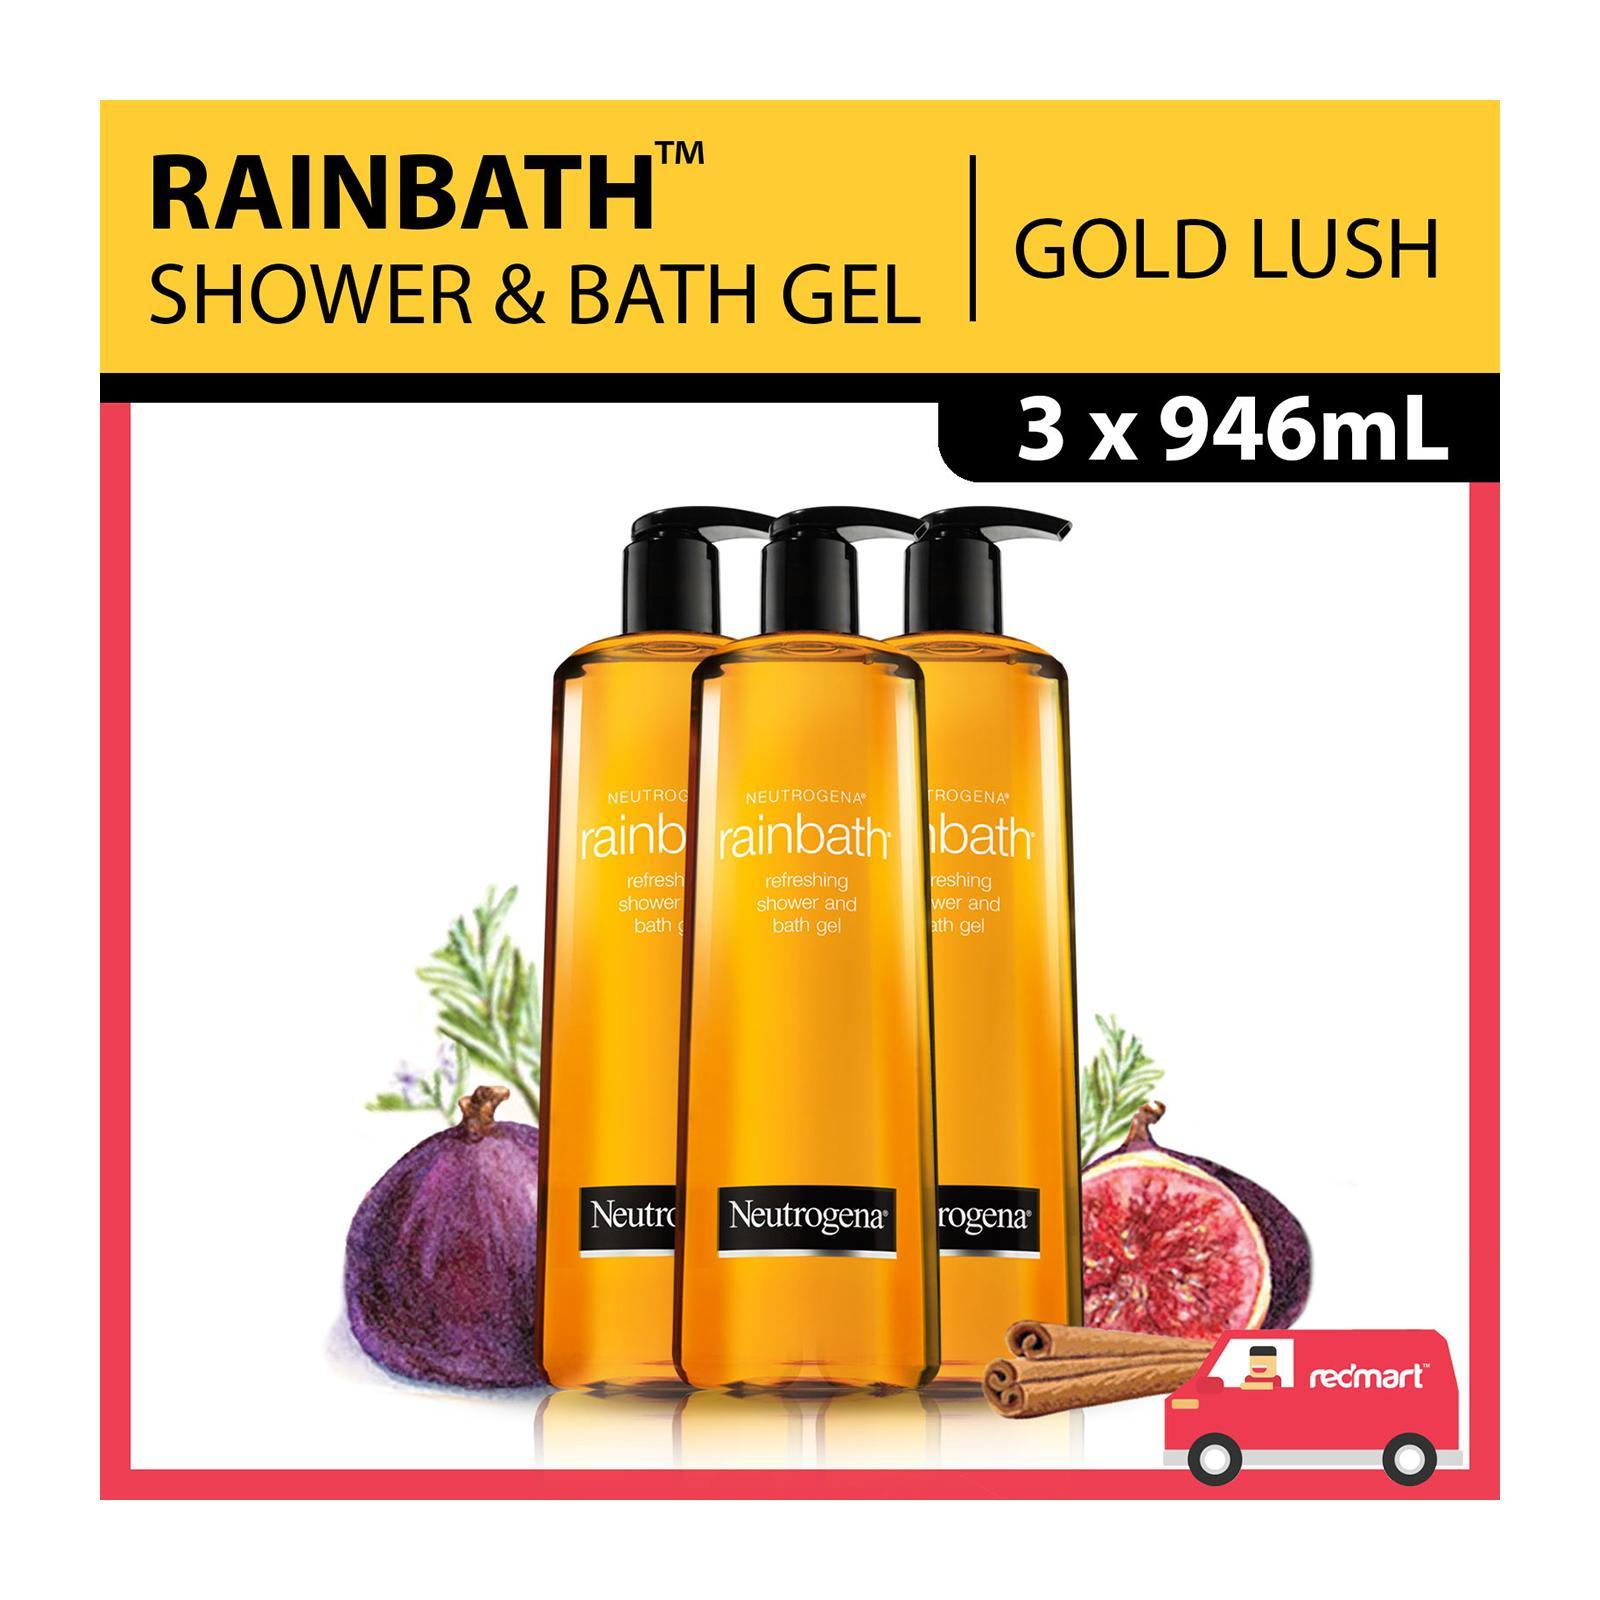 Neutrogena Rainbath Refreshing Shower And Bath Gel Value Pack Bundle